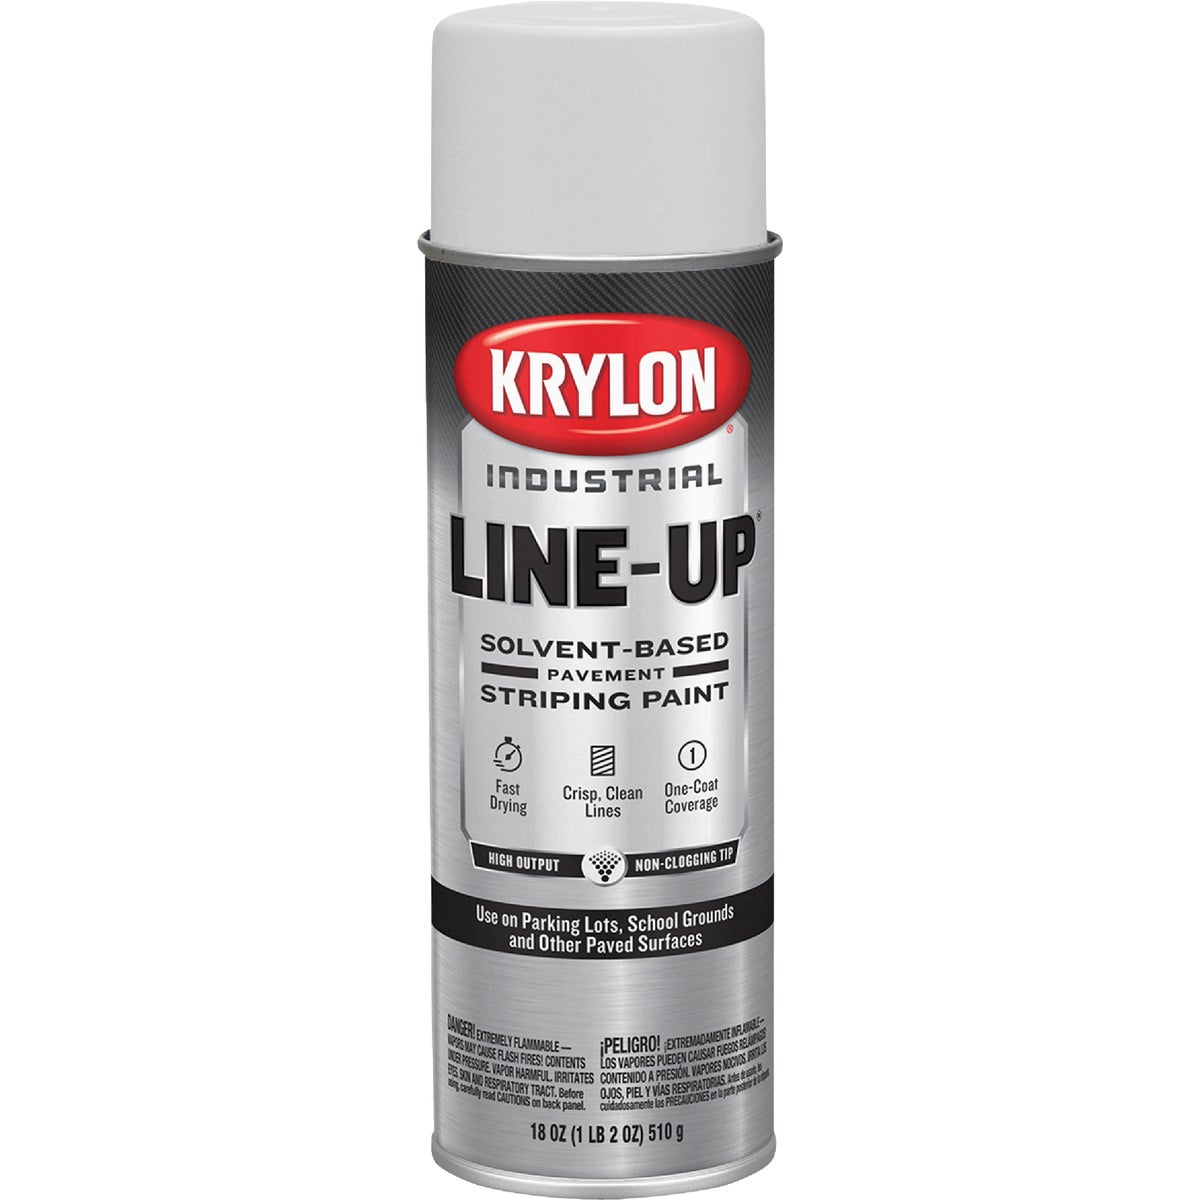 WHT HGHWY STRIPING PAINT - 5910 by Krylon/consumer Div